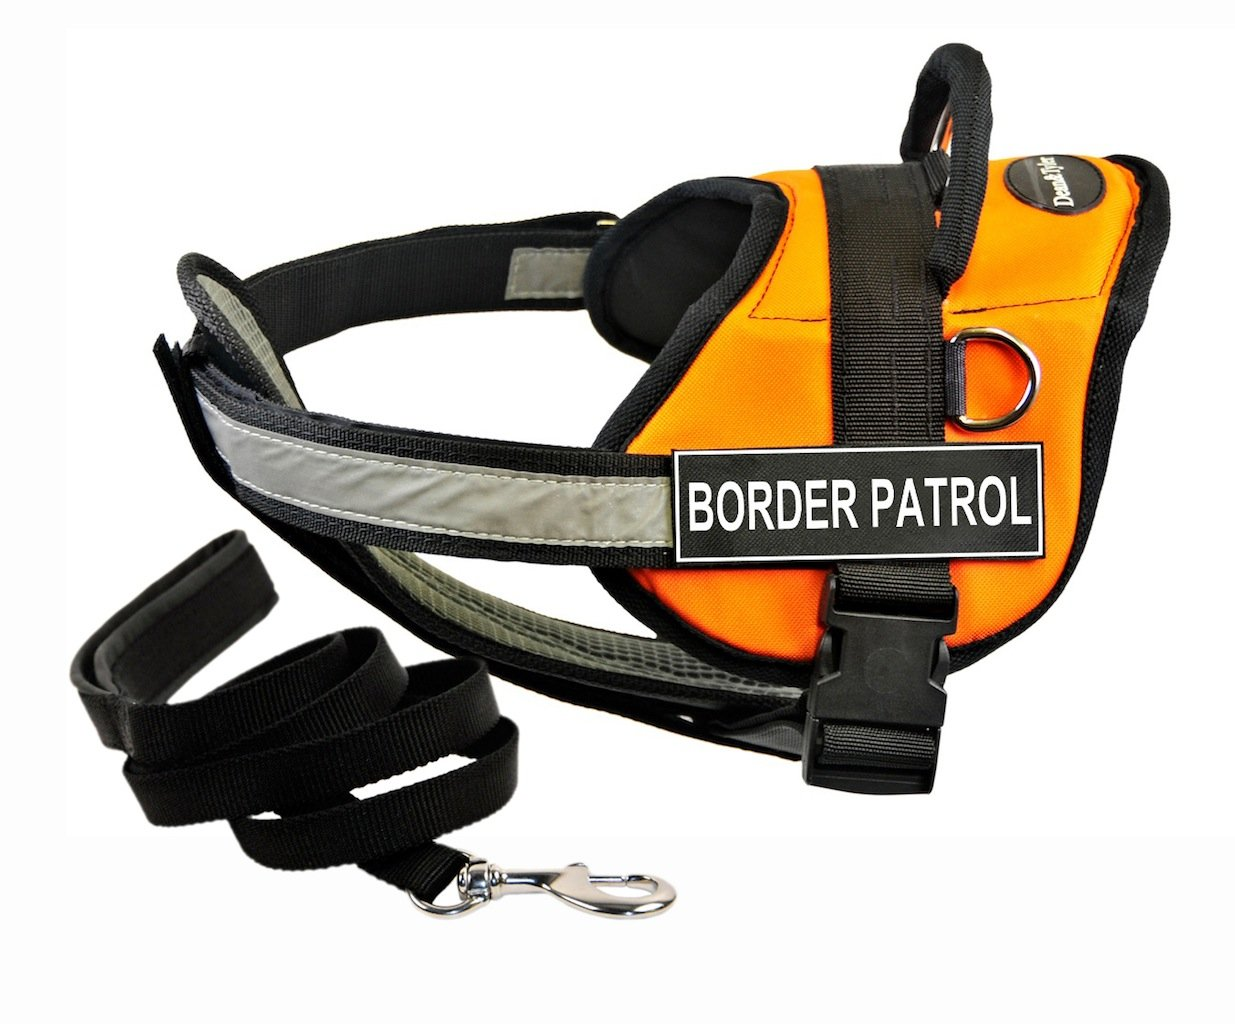 Dean & Tyler's DT Works orange Border Patrol  Harness with Chest Padding, Small, and Black 6 ft Padded Puppy Leash.